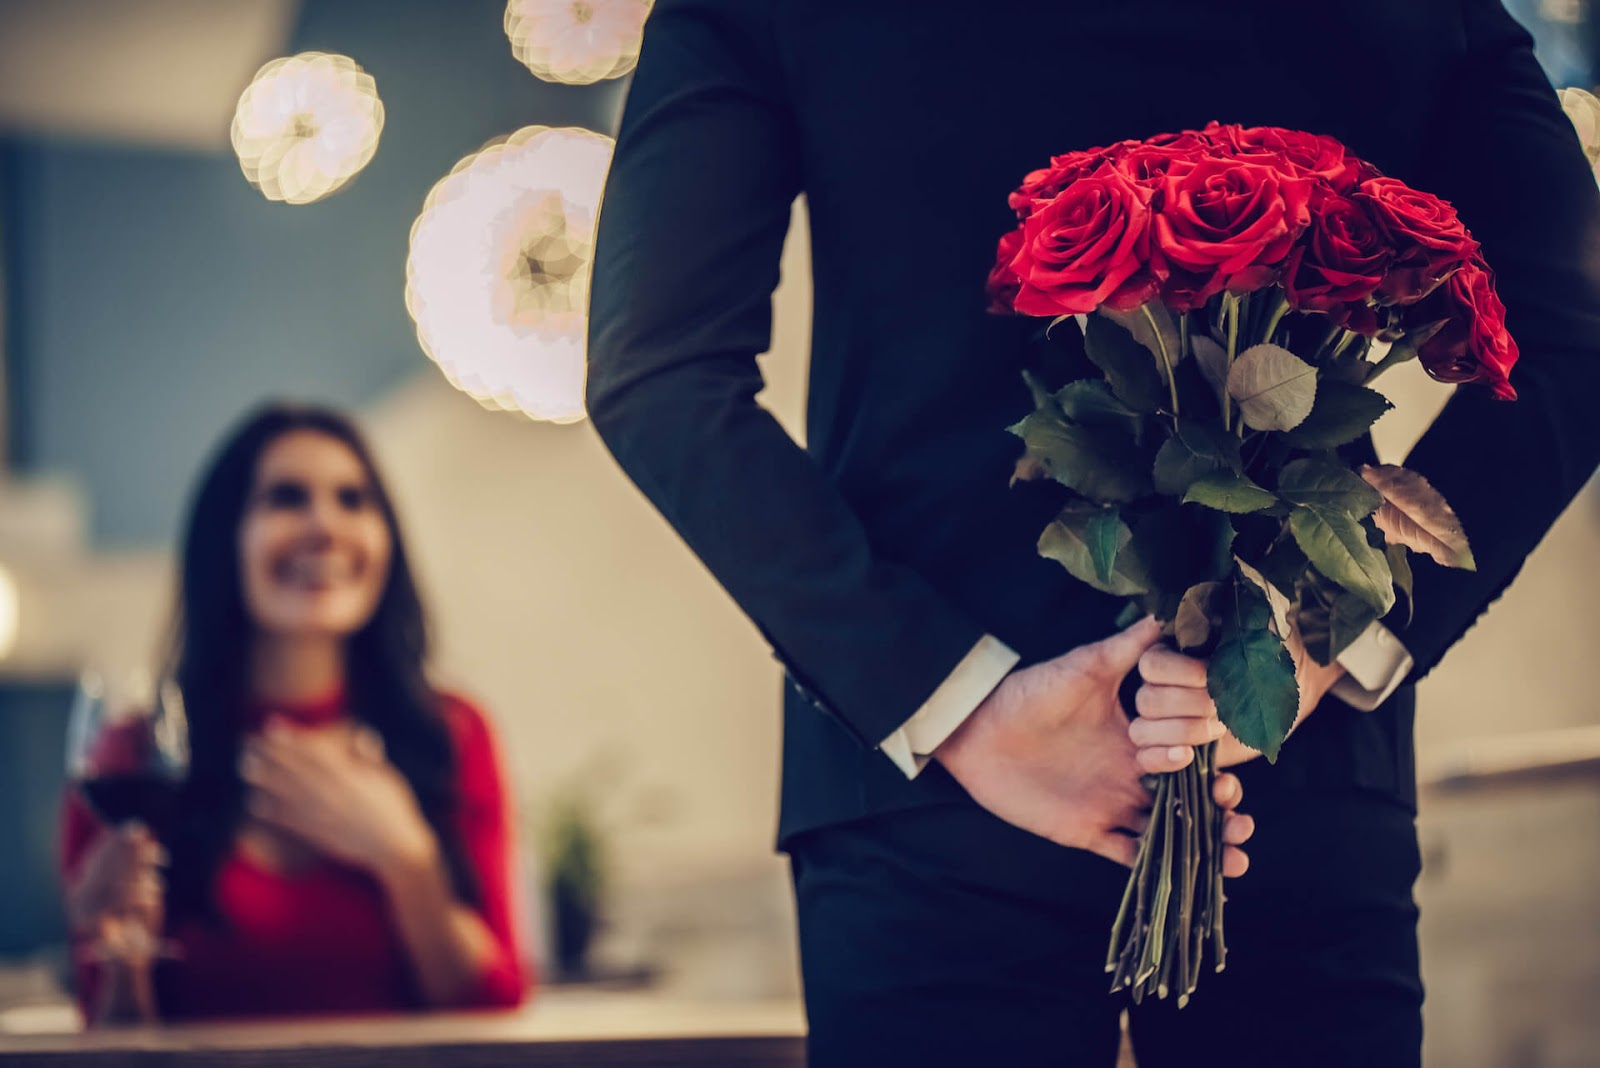 Man surprising a woman with red roses